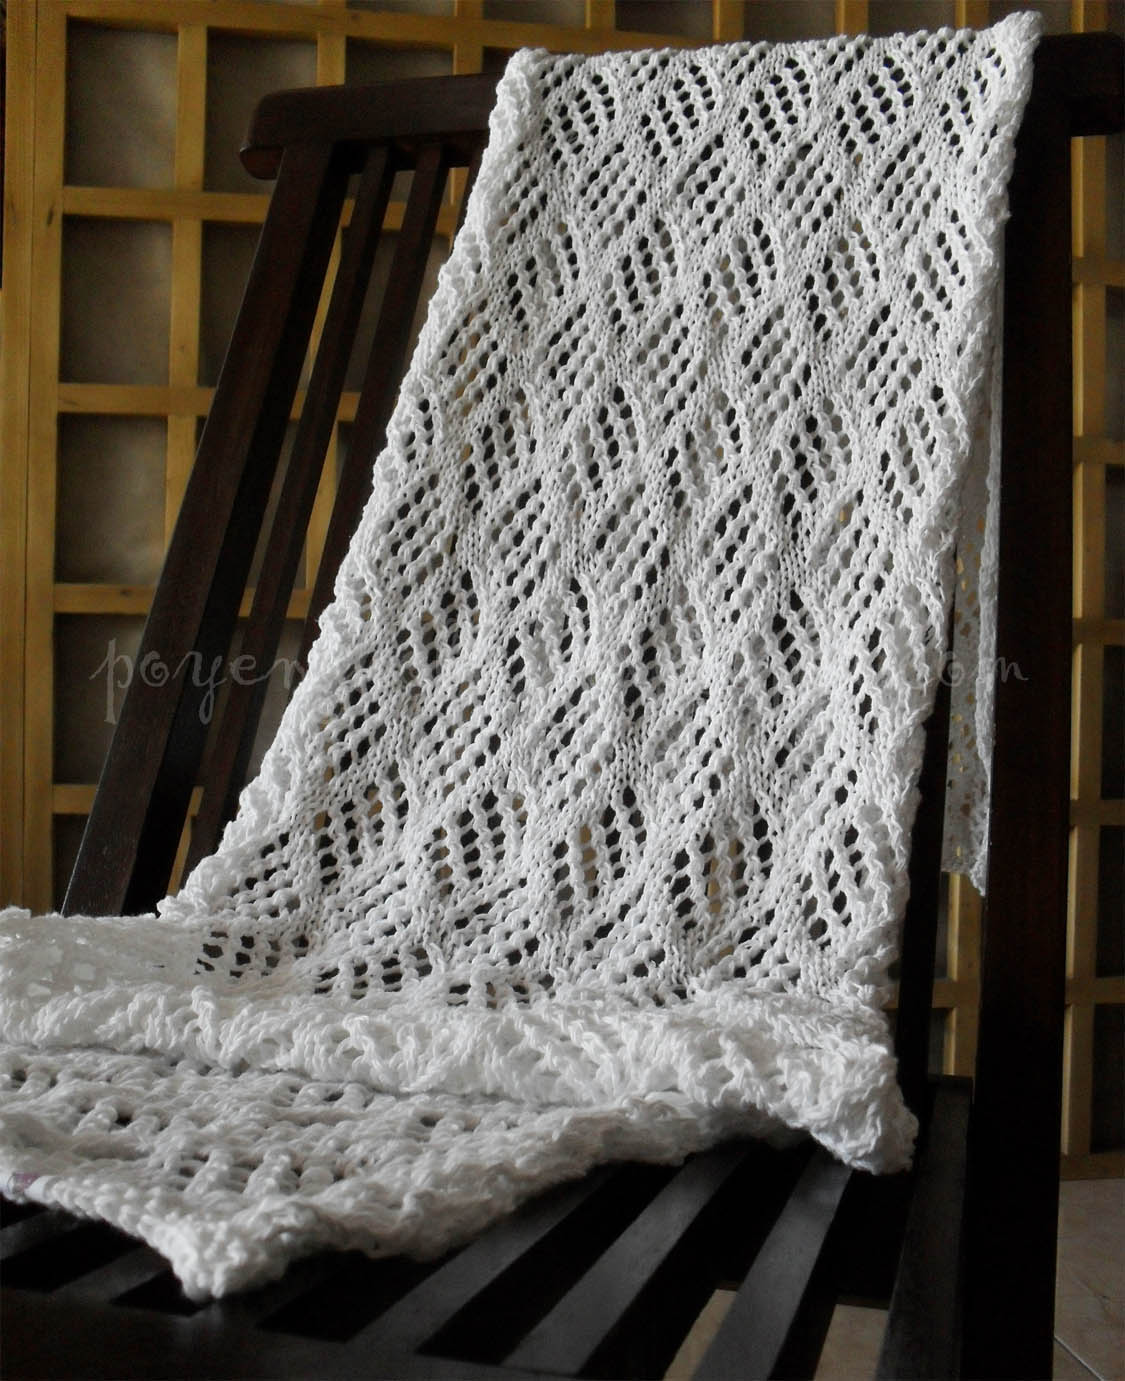 Knitting Patterns For Wraps Free : Free Knit Wrap Pattern Patterns Gallery